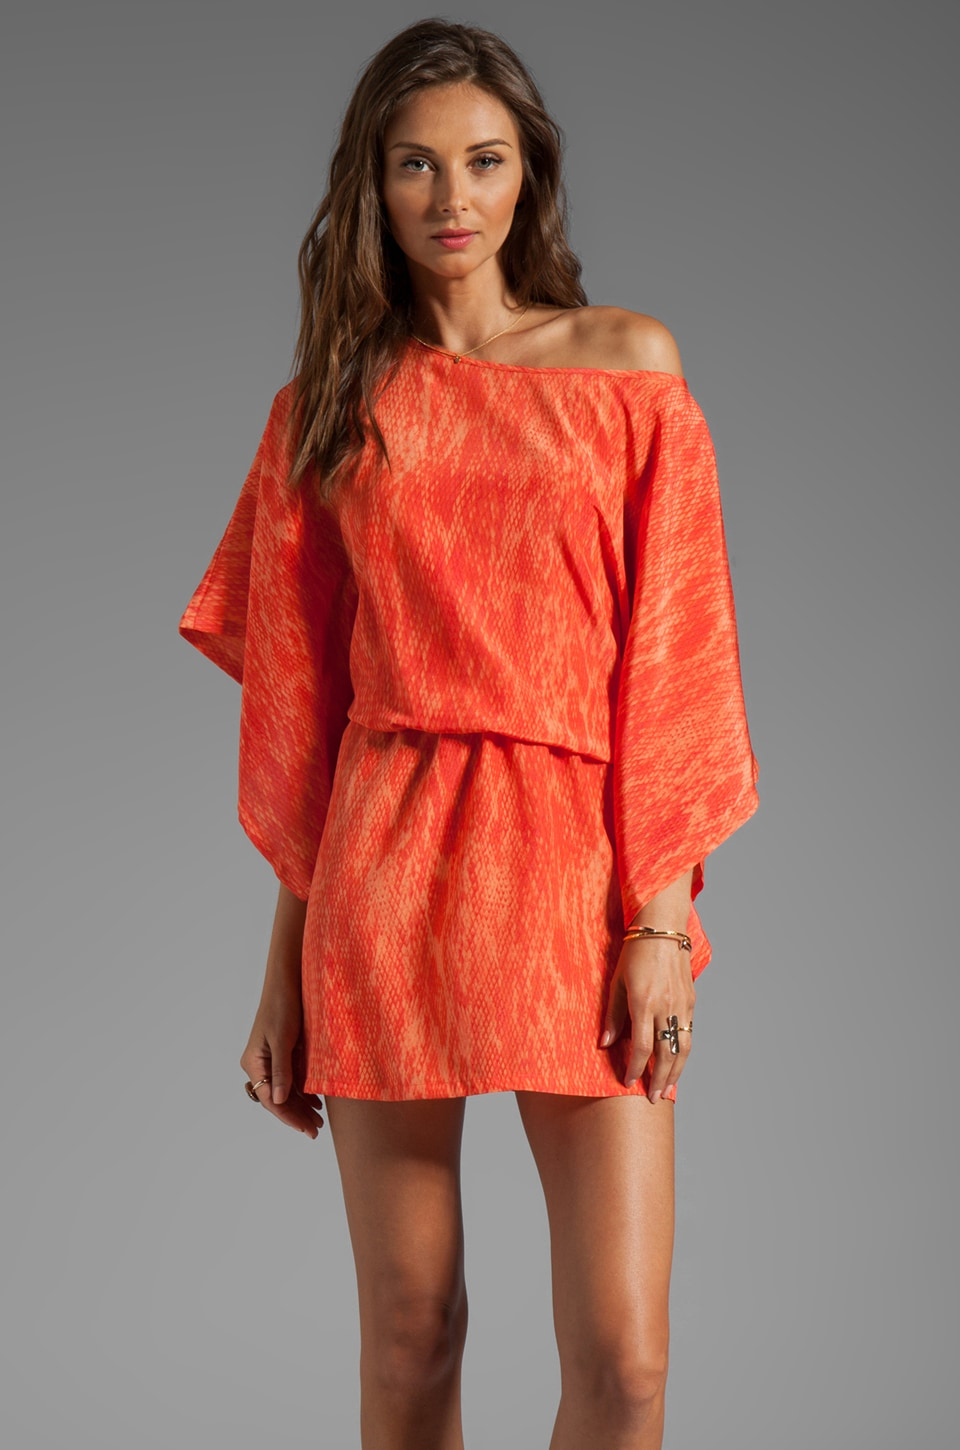 Karina Grimaldi Merida Print Dress in Coral Snake Print